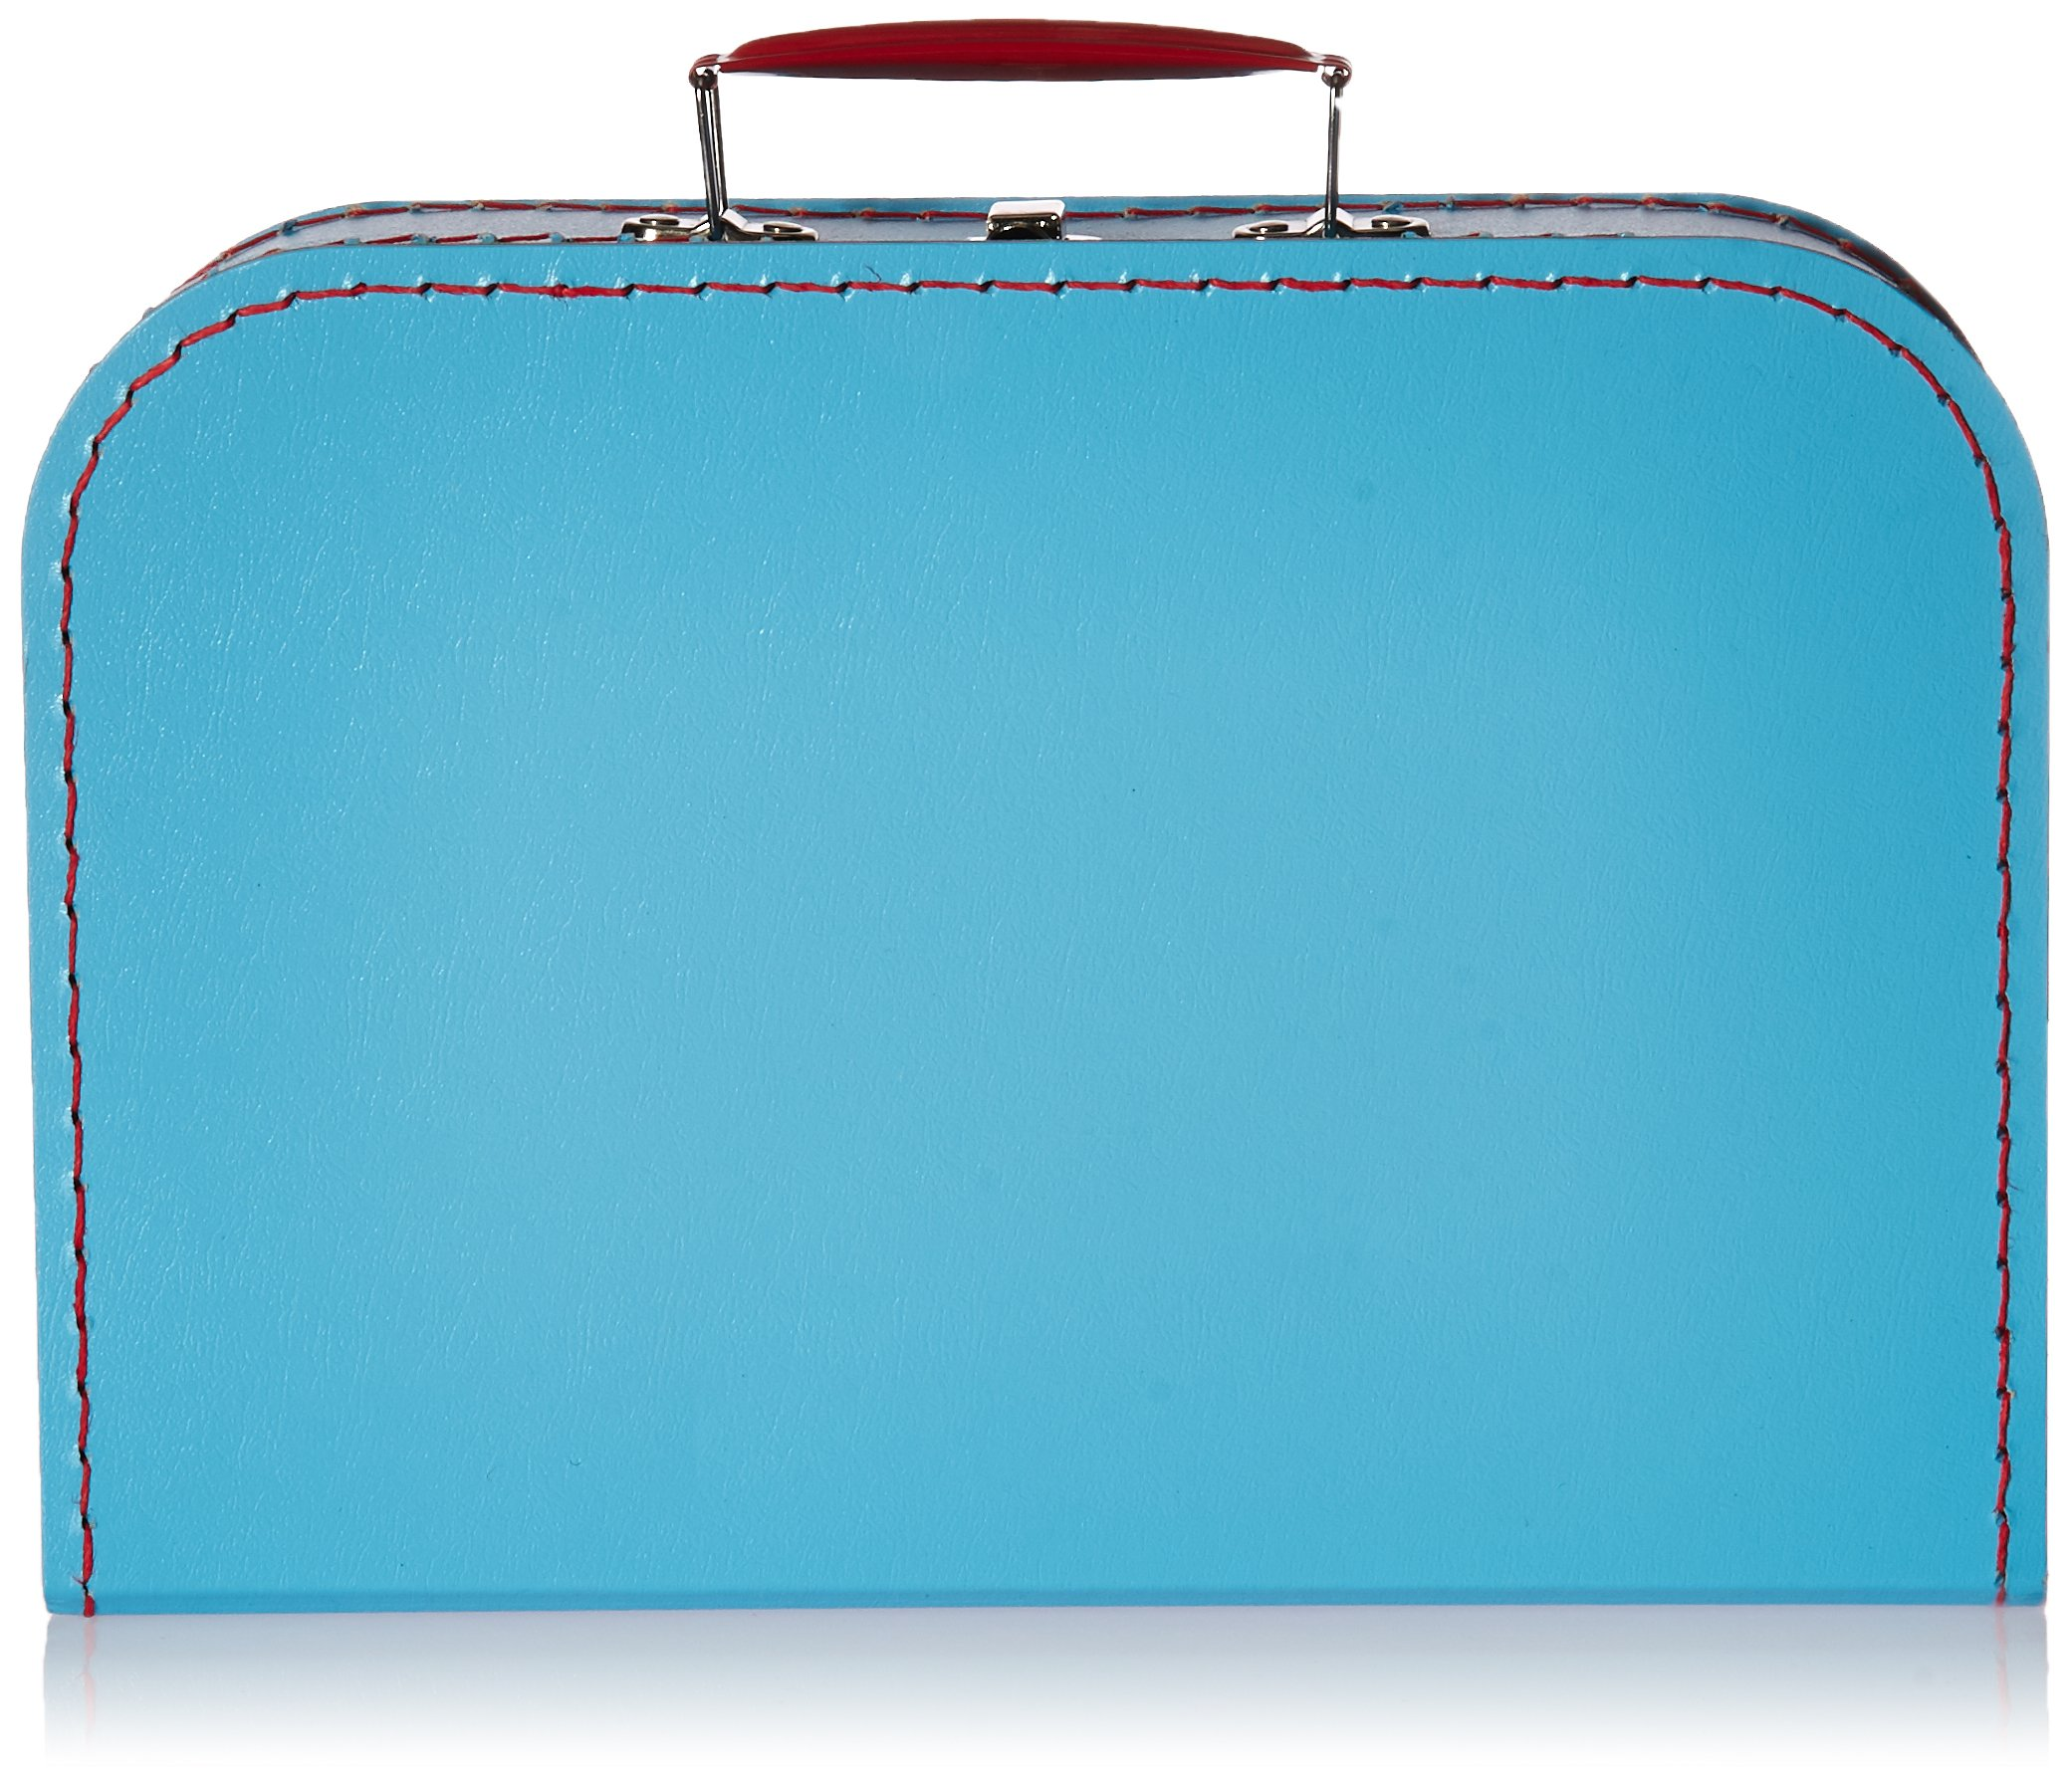 Cargo Cool Euro Suitcases, Soft Blue, Set of 3 by cargo (Image #2)